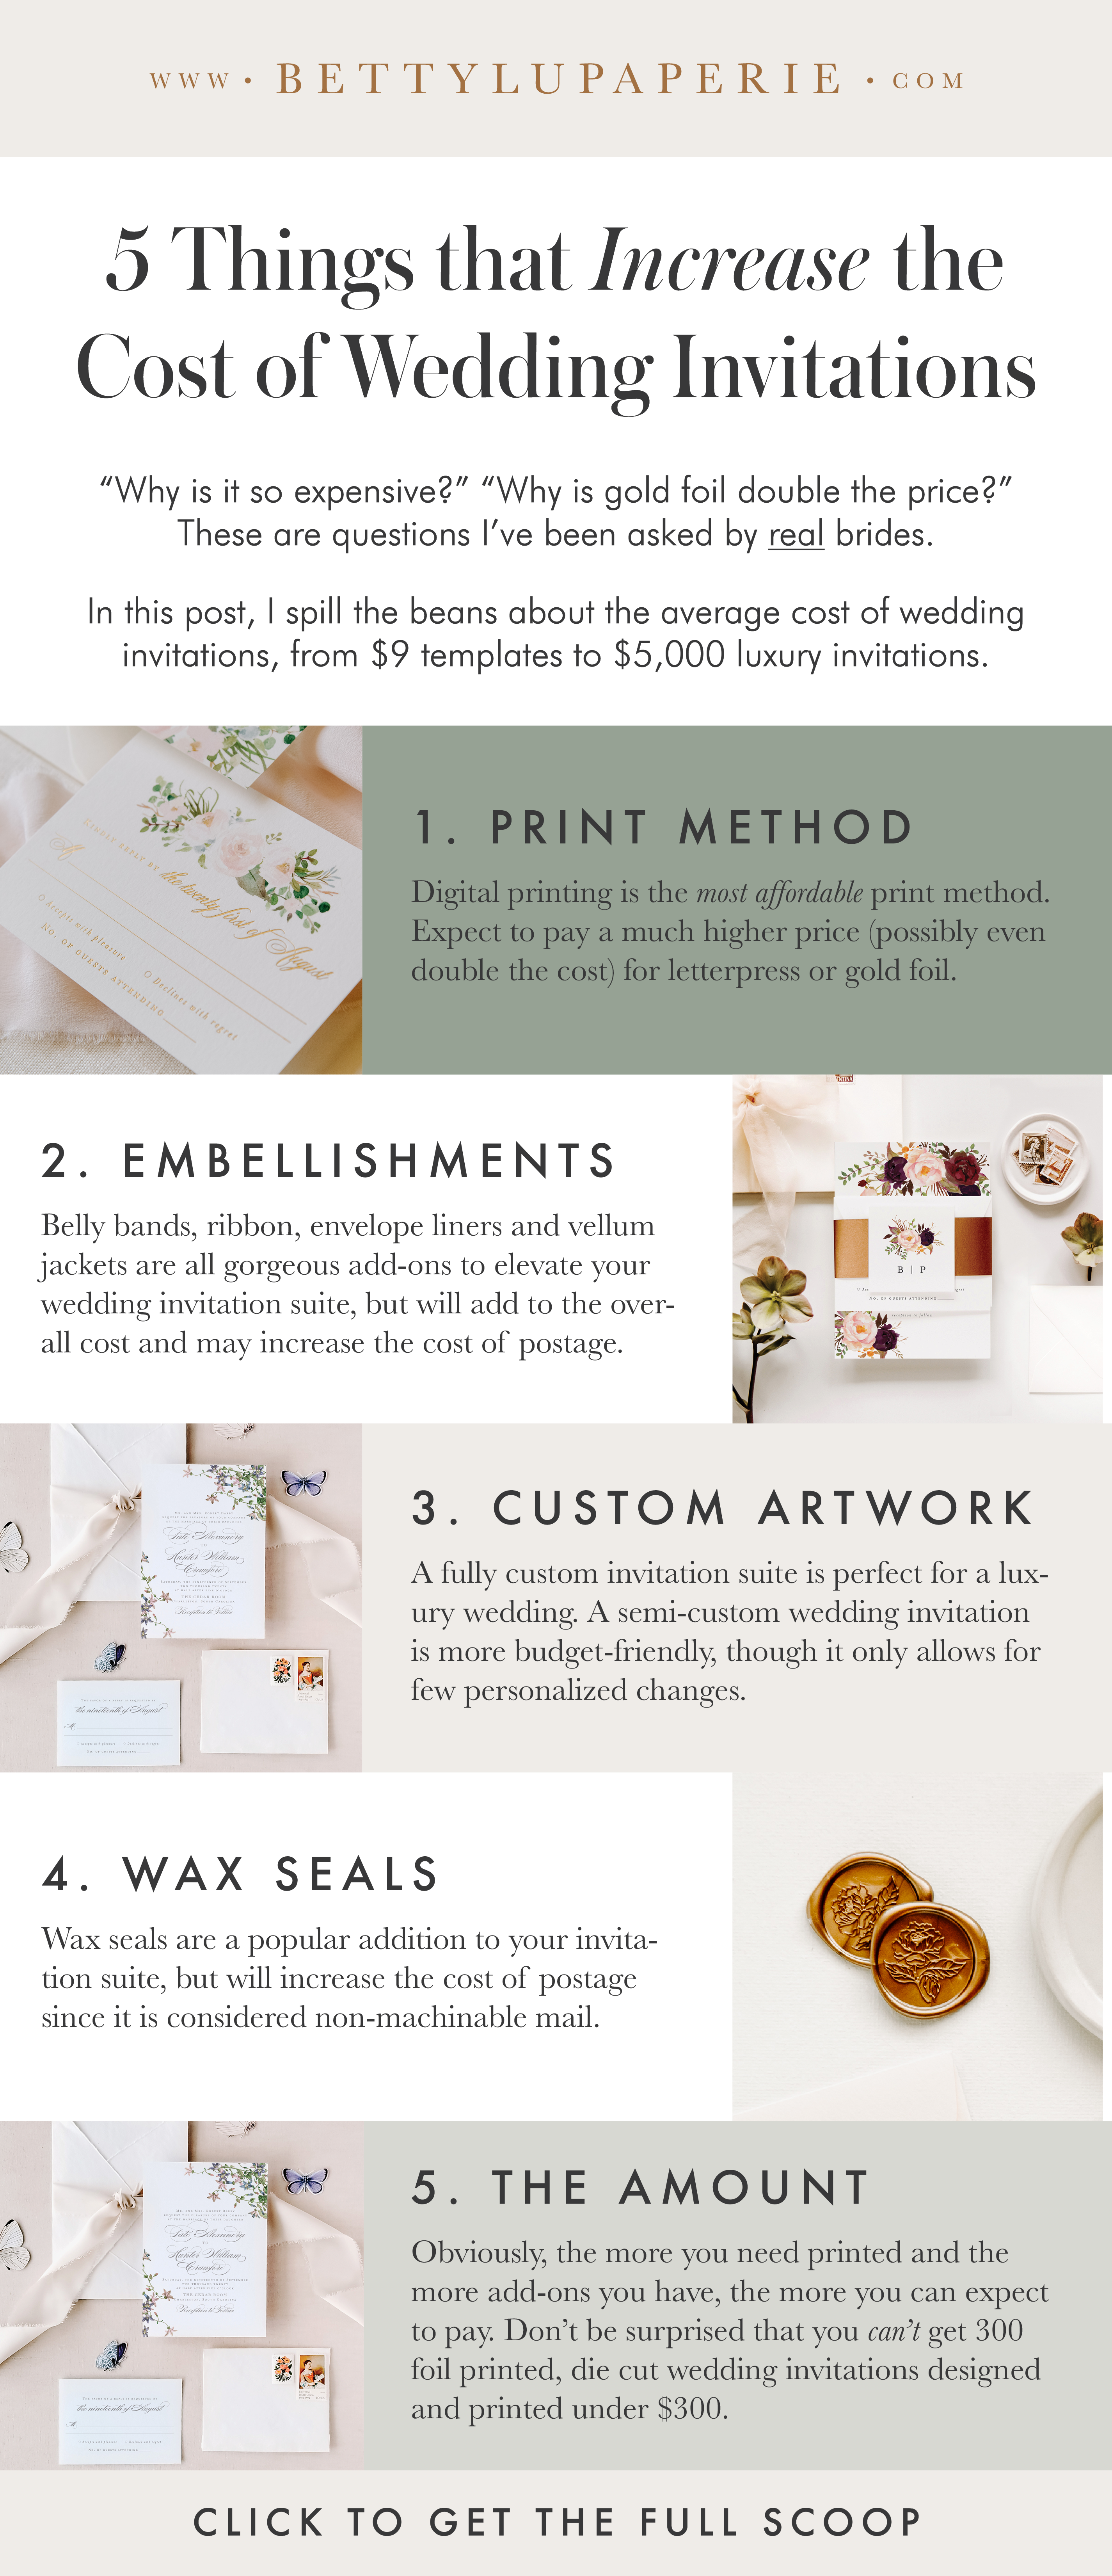 What Is The Average Cost Of Wedding Invitations Floral Wedding Invitations From Betty Lu Paperie Wedding Costs Wedding Planning On A Budget Wedding Planning Tips